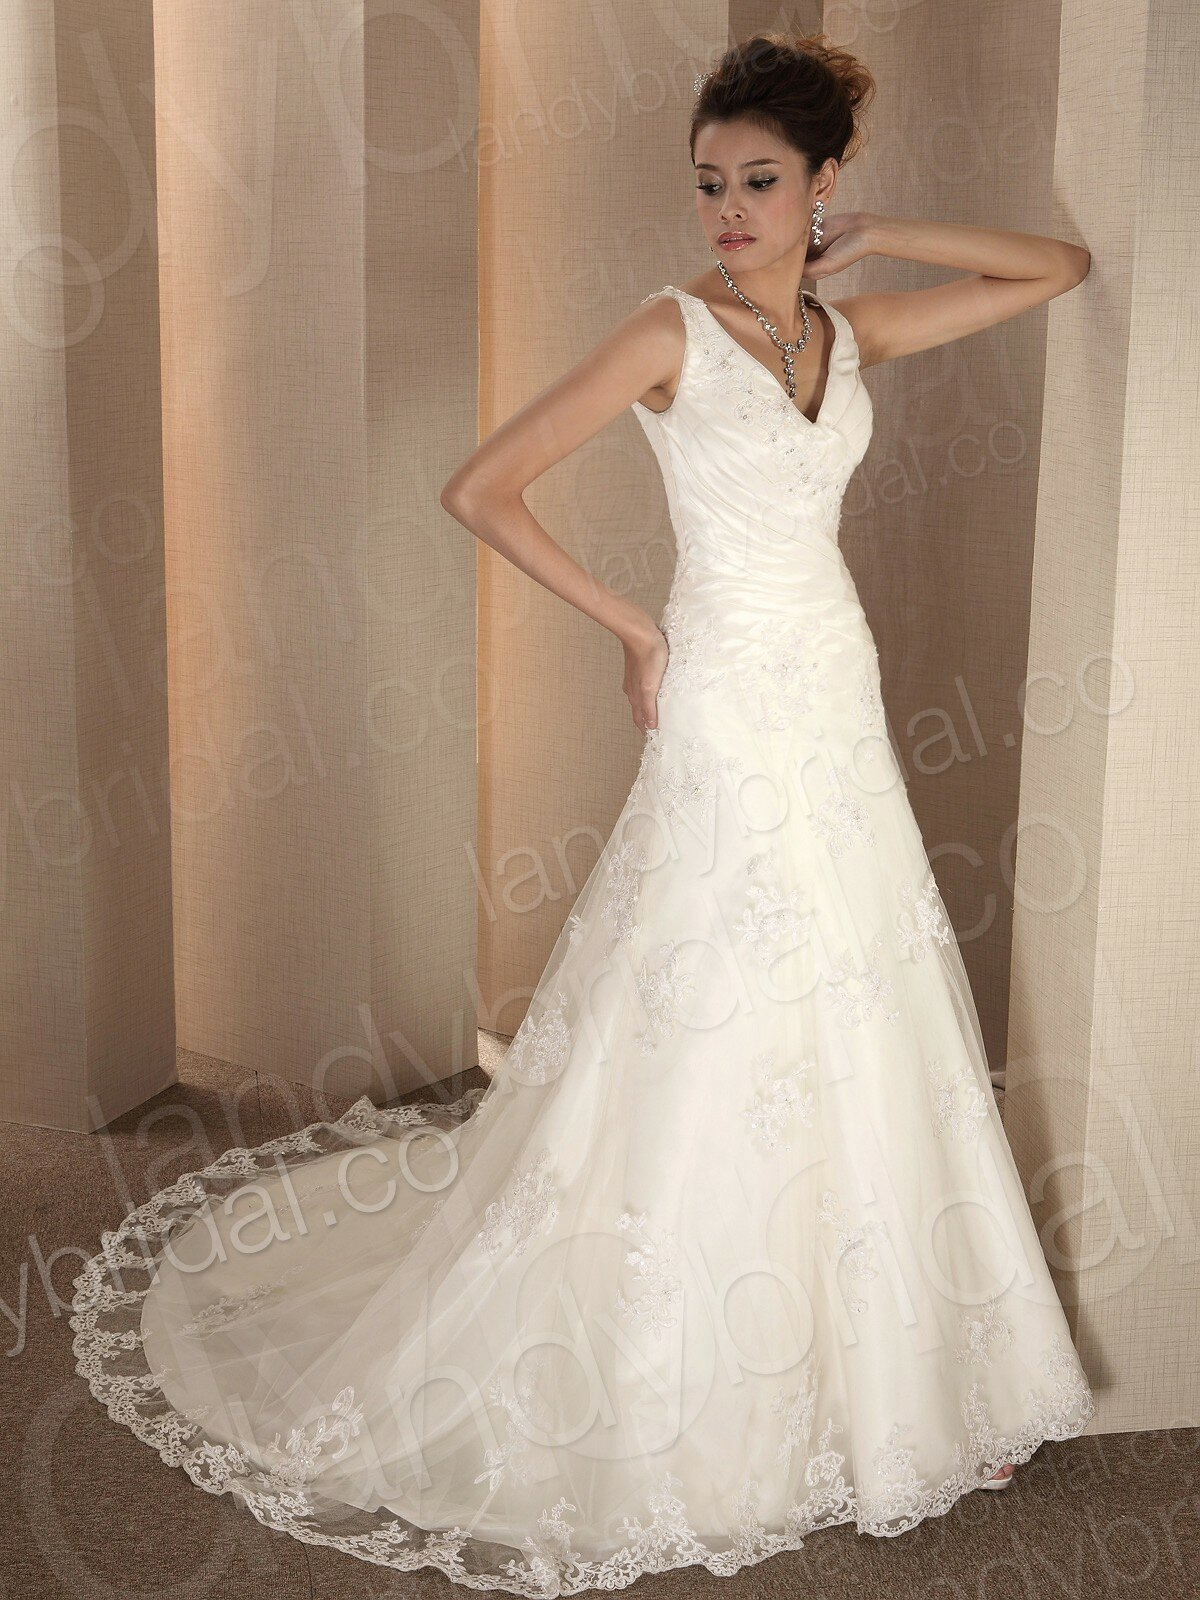 A line v neck wedding dresses pictures ideas guide to for V neck strapless wedding dress